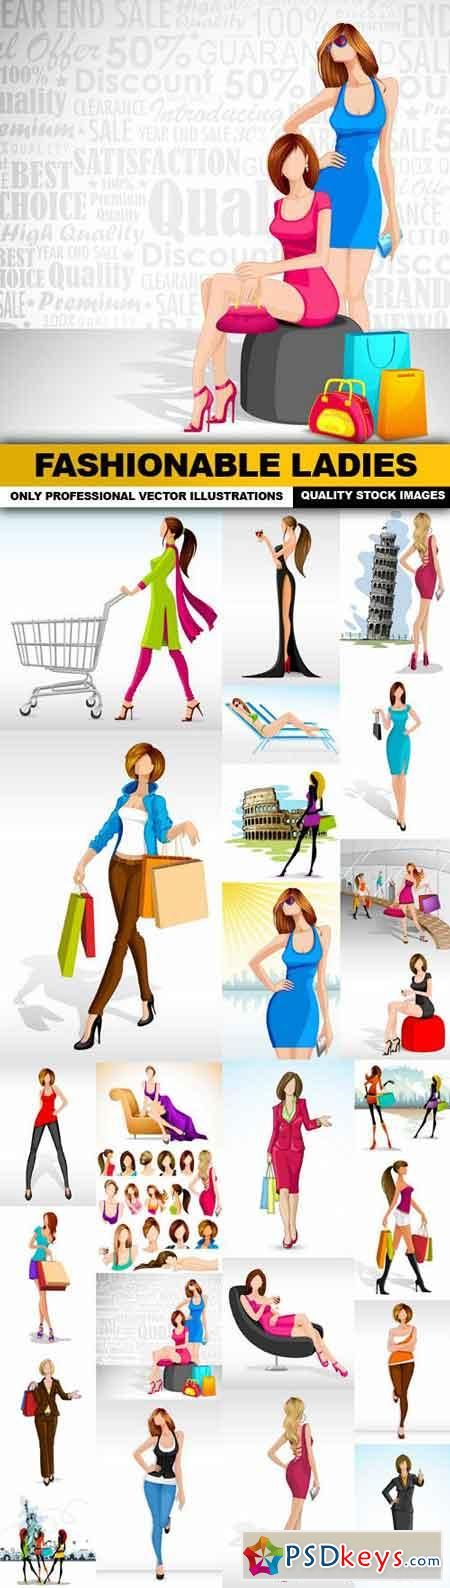 Fashionable Ladies - 25 Vector